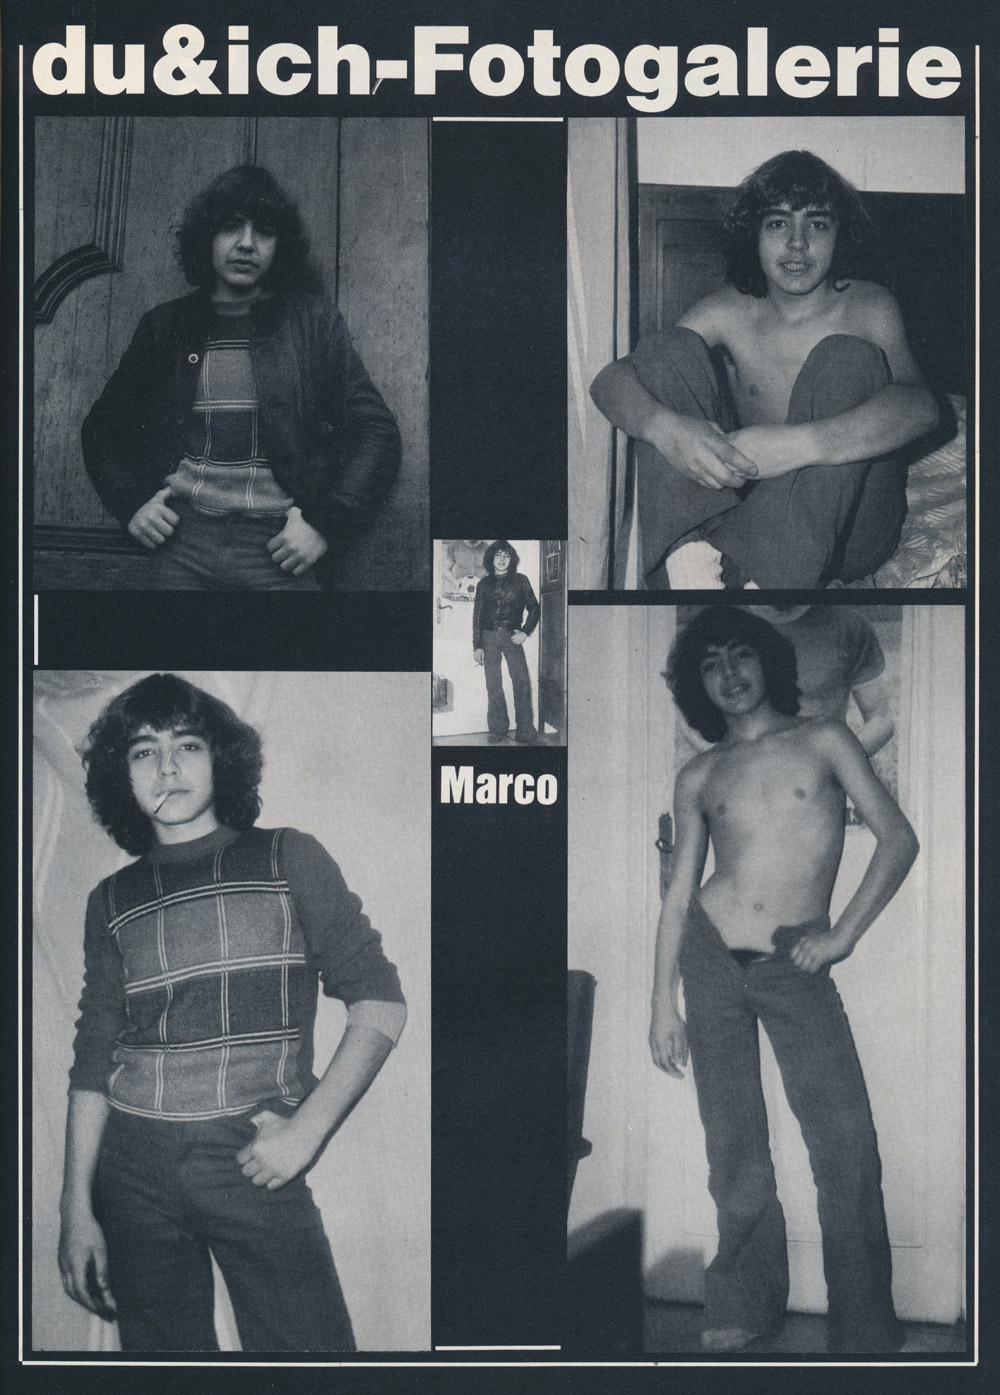 Du & Ich 8, 1979, shirtless boy Marco